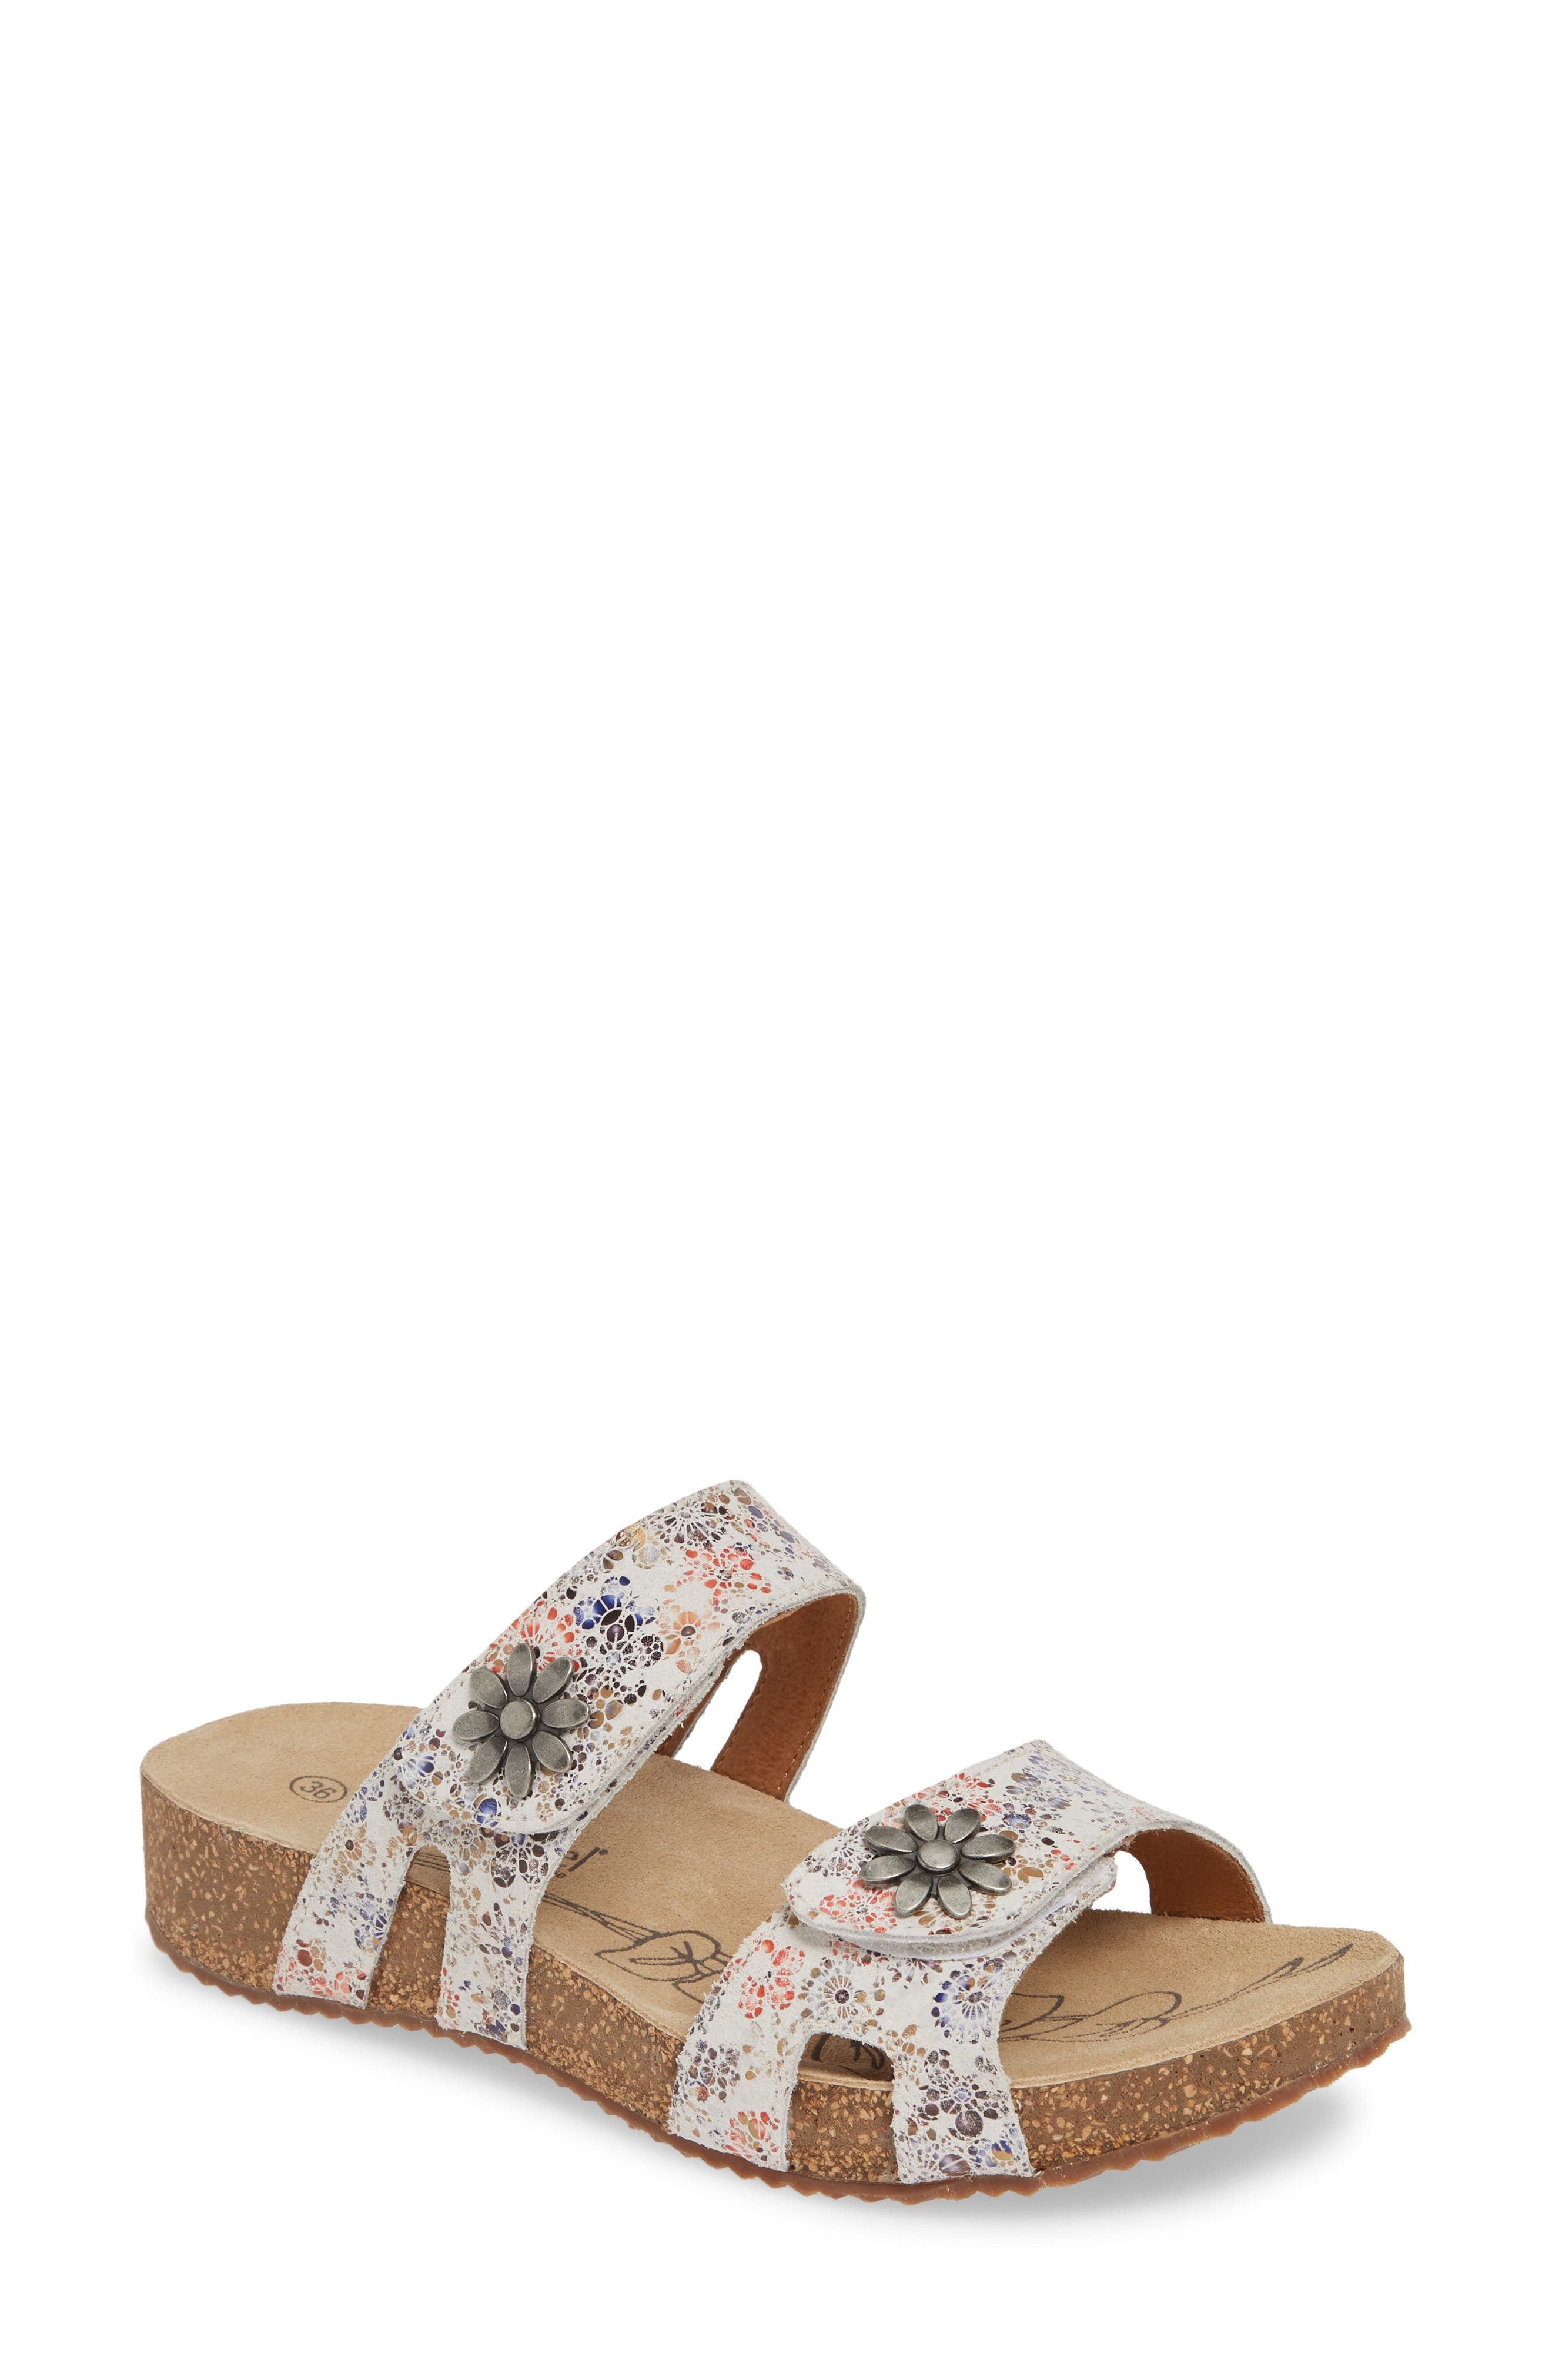 Brushed metallic hardware furthers the vintage-inspired charm of a casual-chic sandal crafted with a contoured, ergonomically cushioned footbed for effortless comfort. Style Name: Josef Seibel \\\'Tonga 04\\\' Sandal. Style Number: 998003. Available in stores.